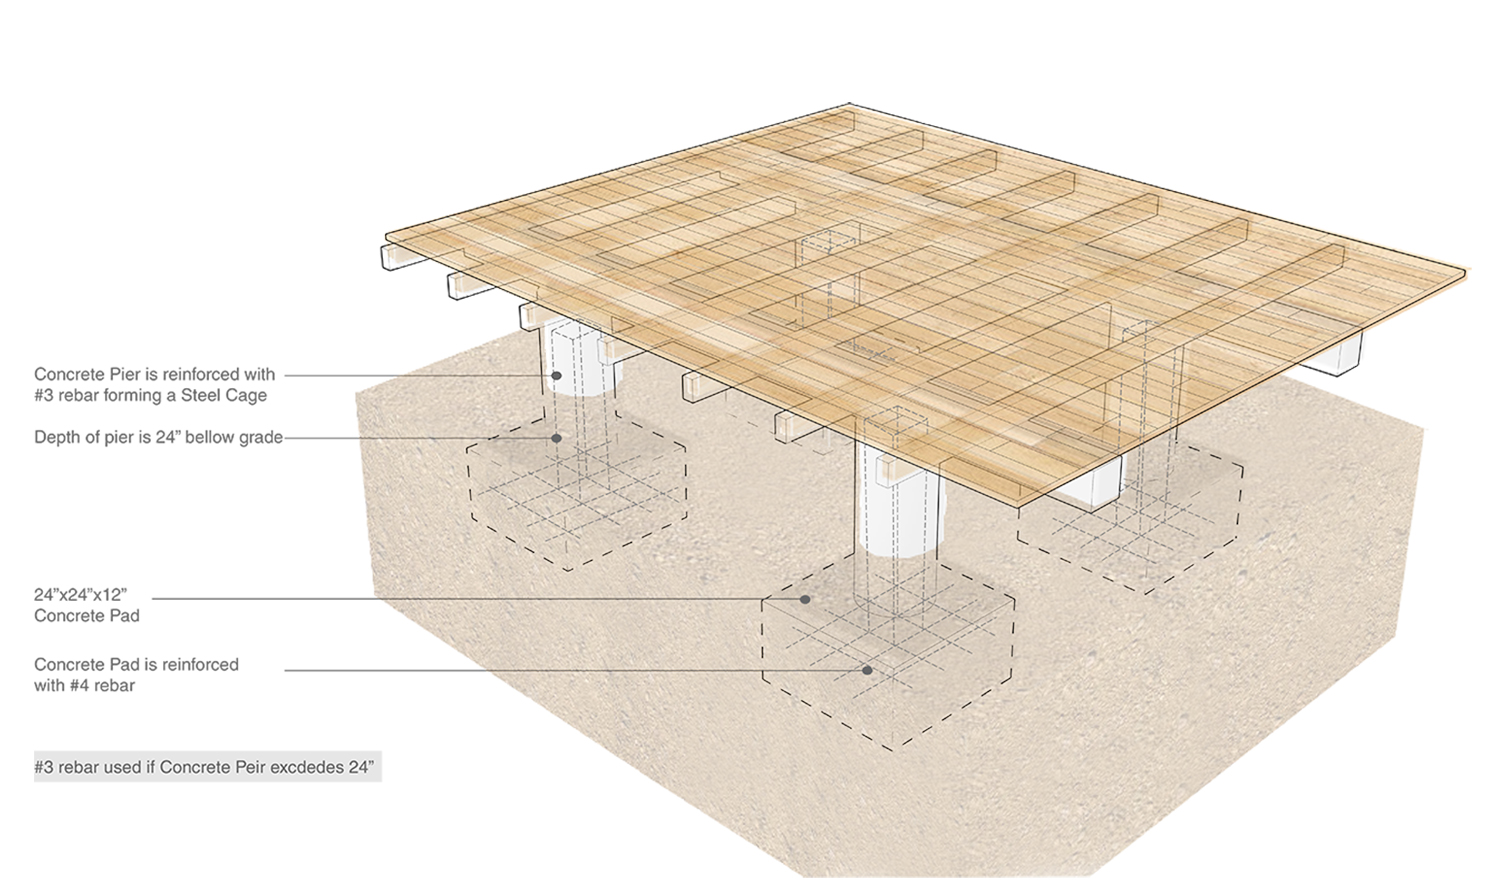 Pier and beam diagram.png